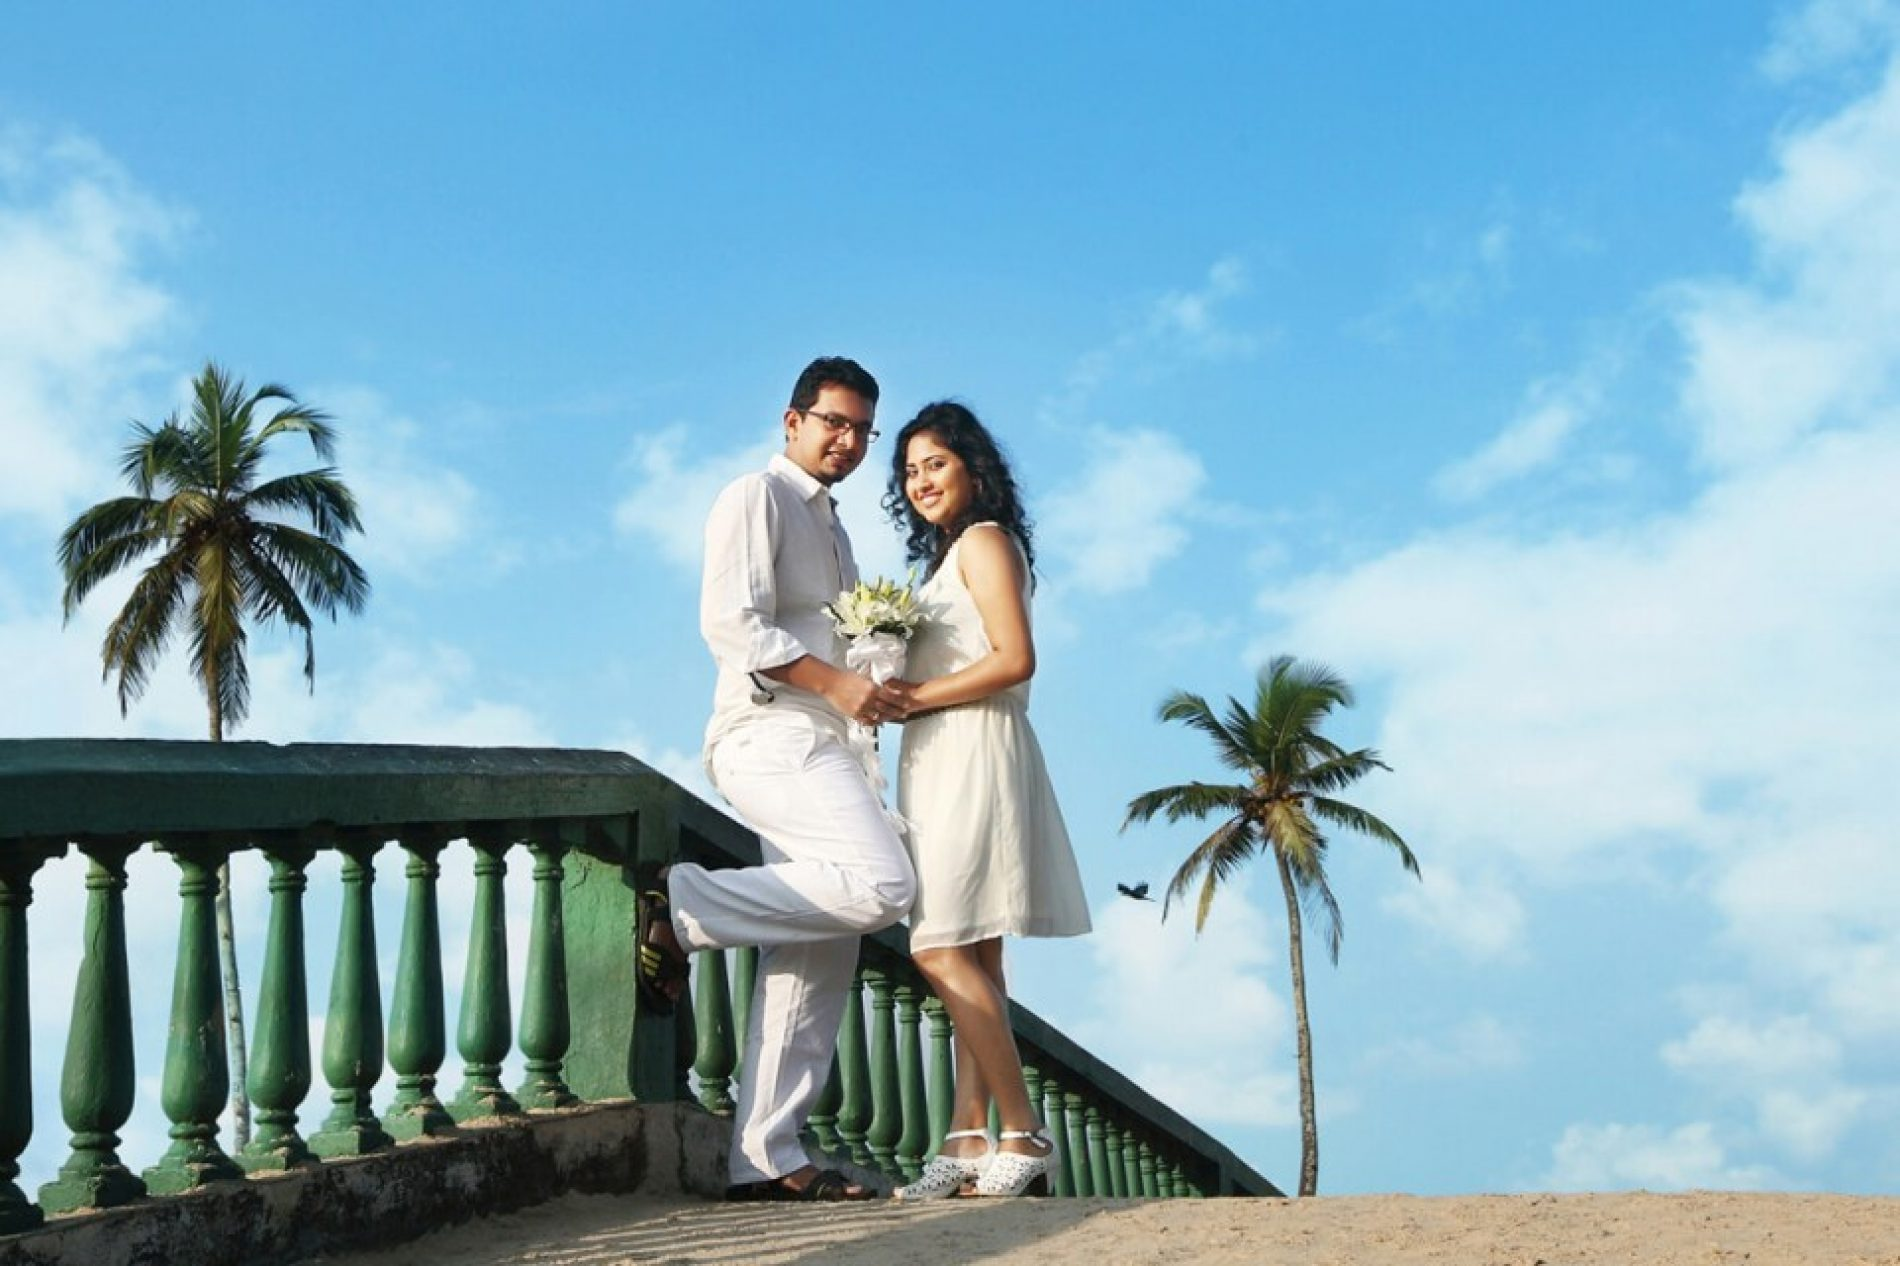 Reasons to Hire Professional Wedding Photographers